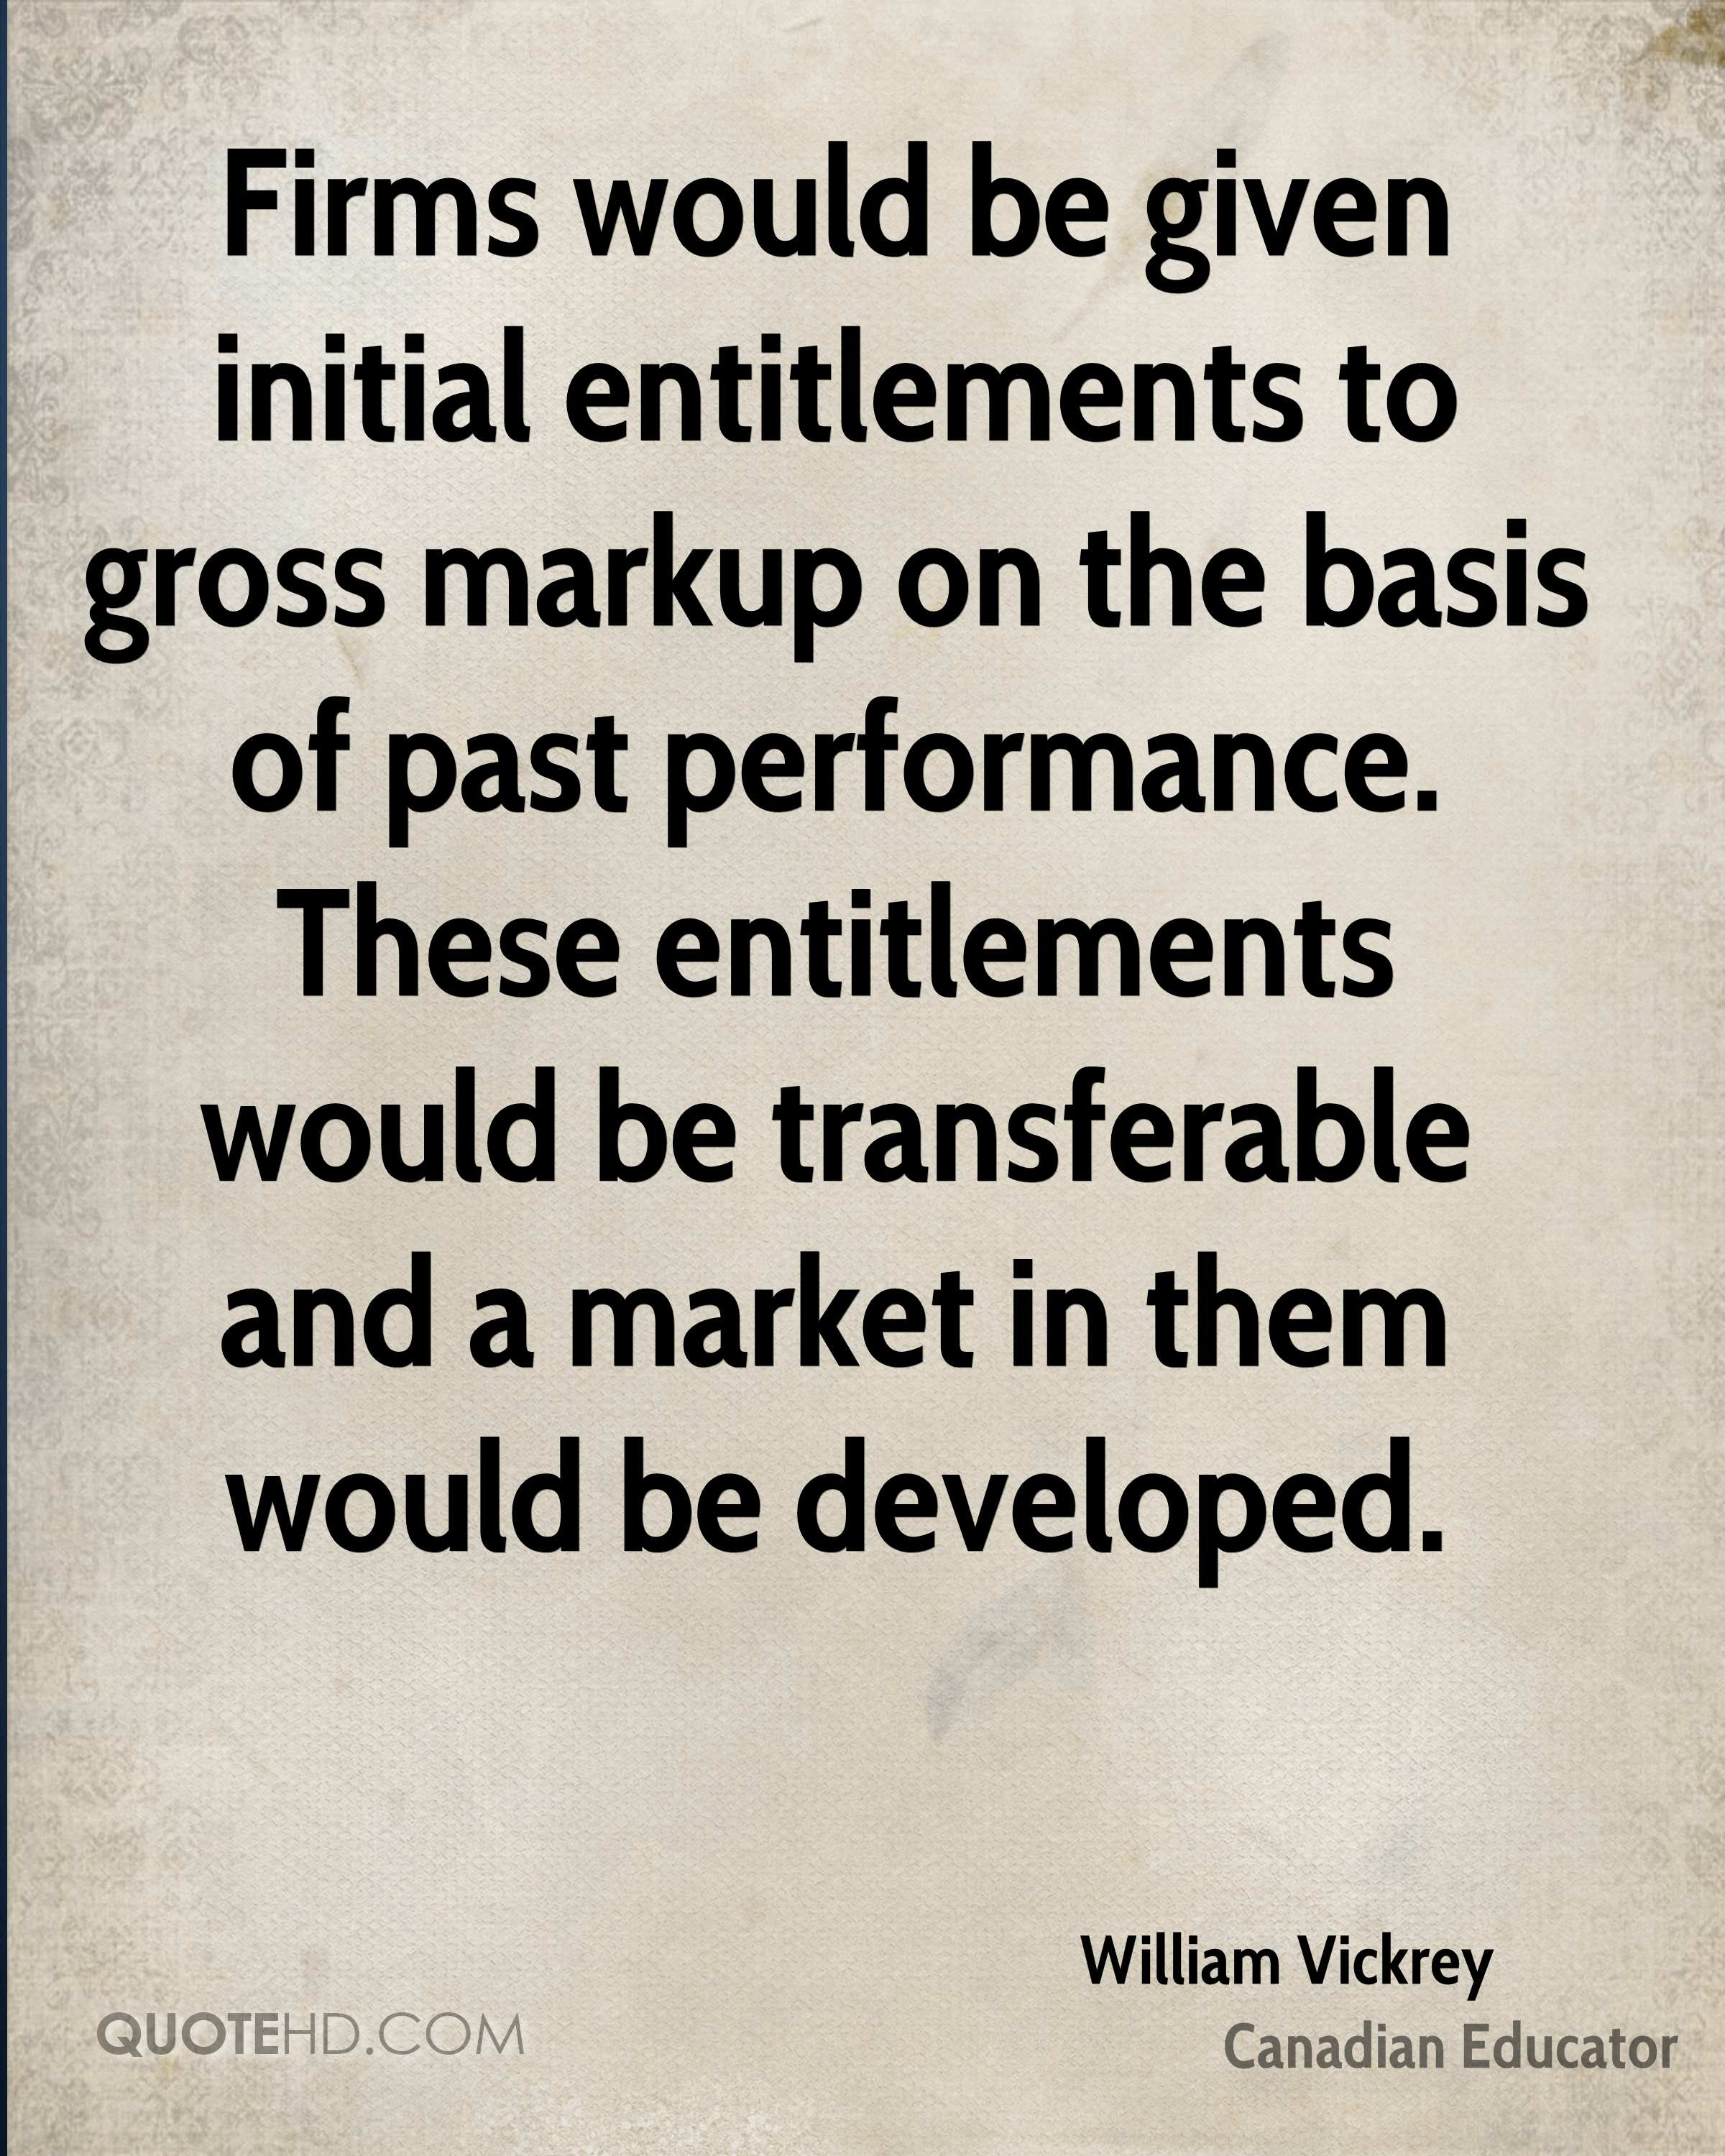 Firms would be given initial entitlements to gross markup on the basis of past performance. These entitlements would be transferable and a market in them would be developed.